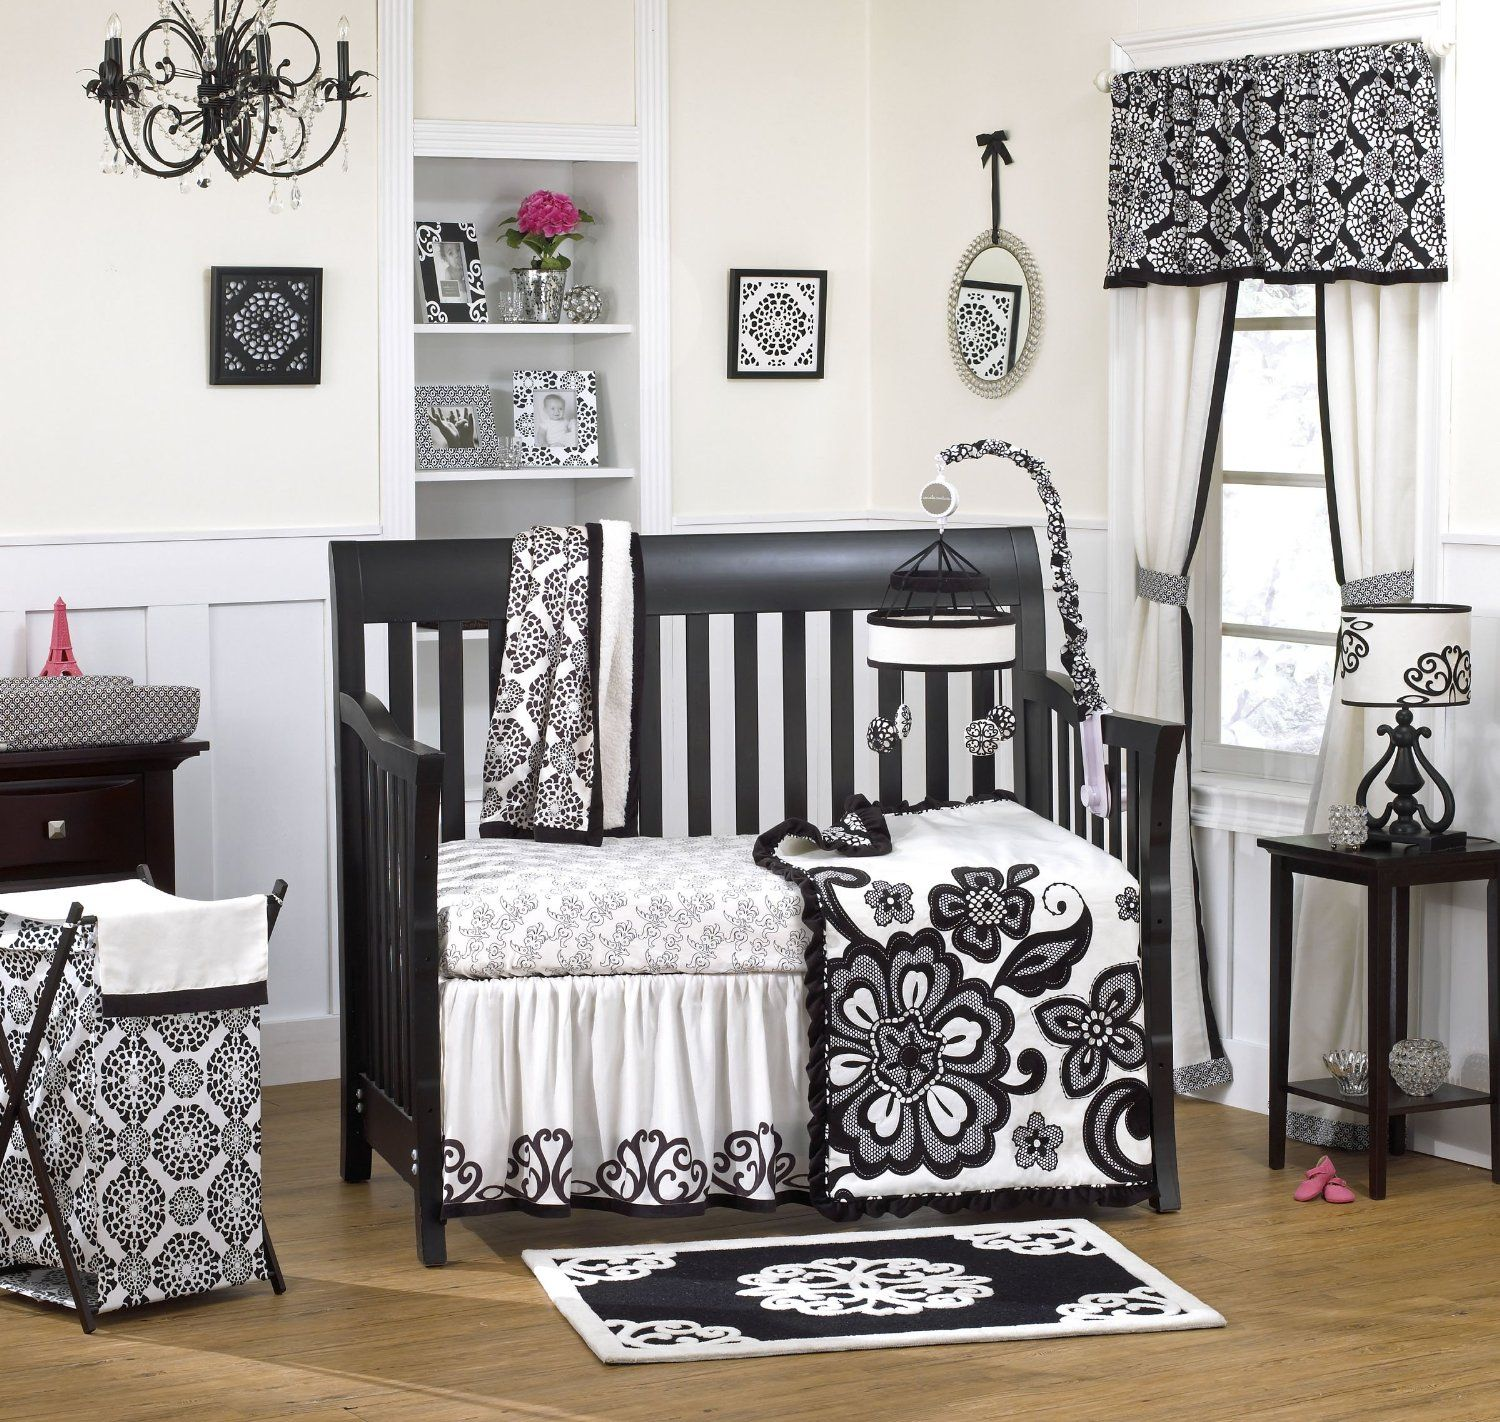 black beddingsllow of gray this rugby decoration baby image ideas flower mustard holly designs floral sets from gold sheets niche walmart fl white best collections grey duvets as and by size crib willoughby nursery luxury full well yellow cover eastern bedding sweetgalas covers duvet comforter